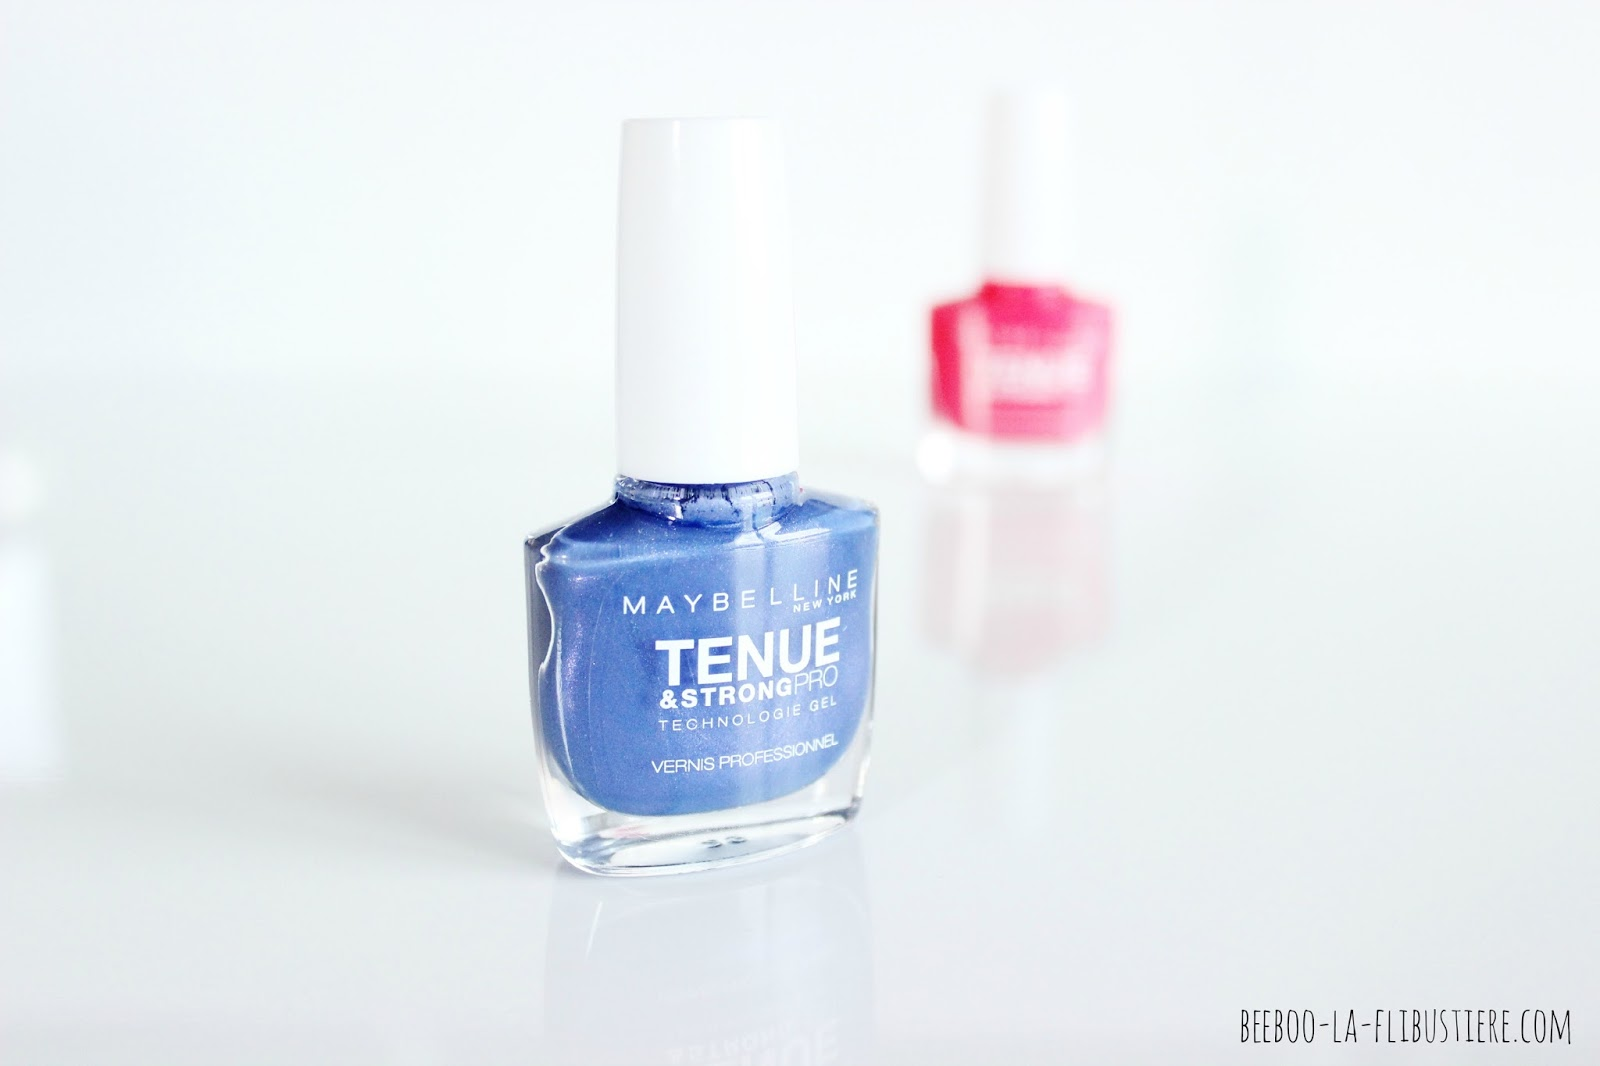 tenue & strong pro maybelline 645 Viva blue violet